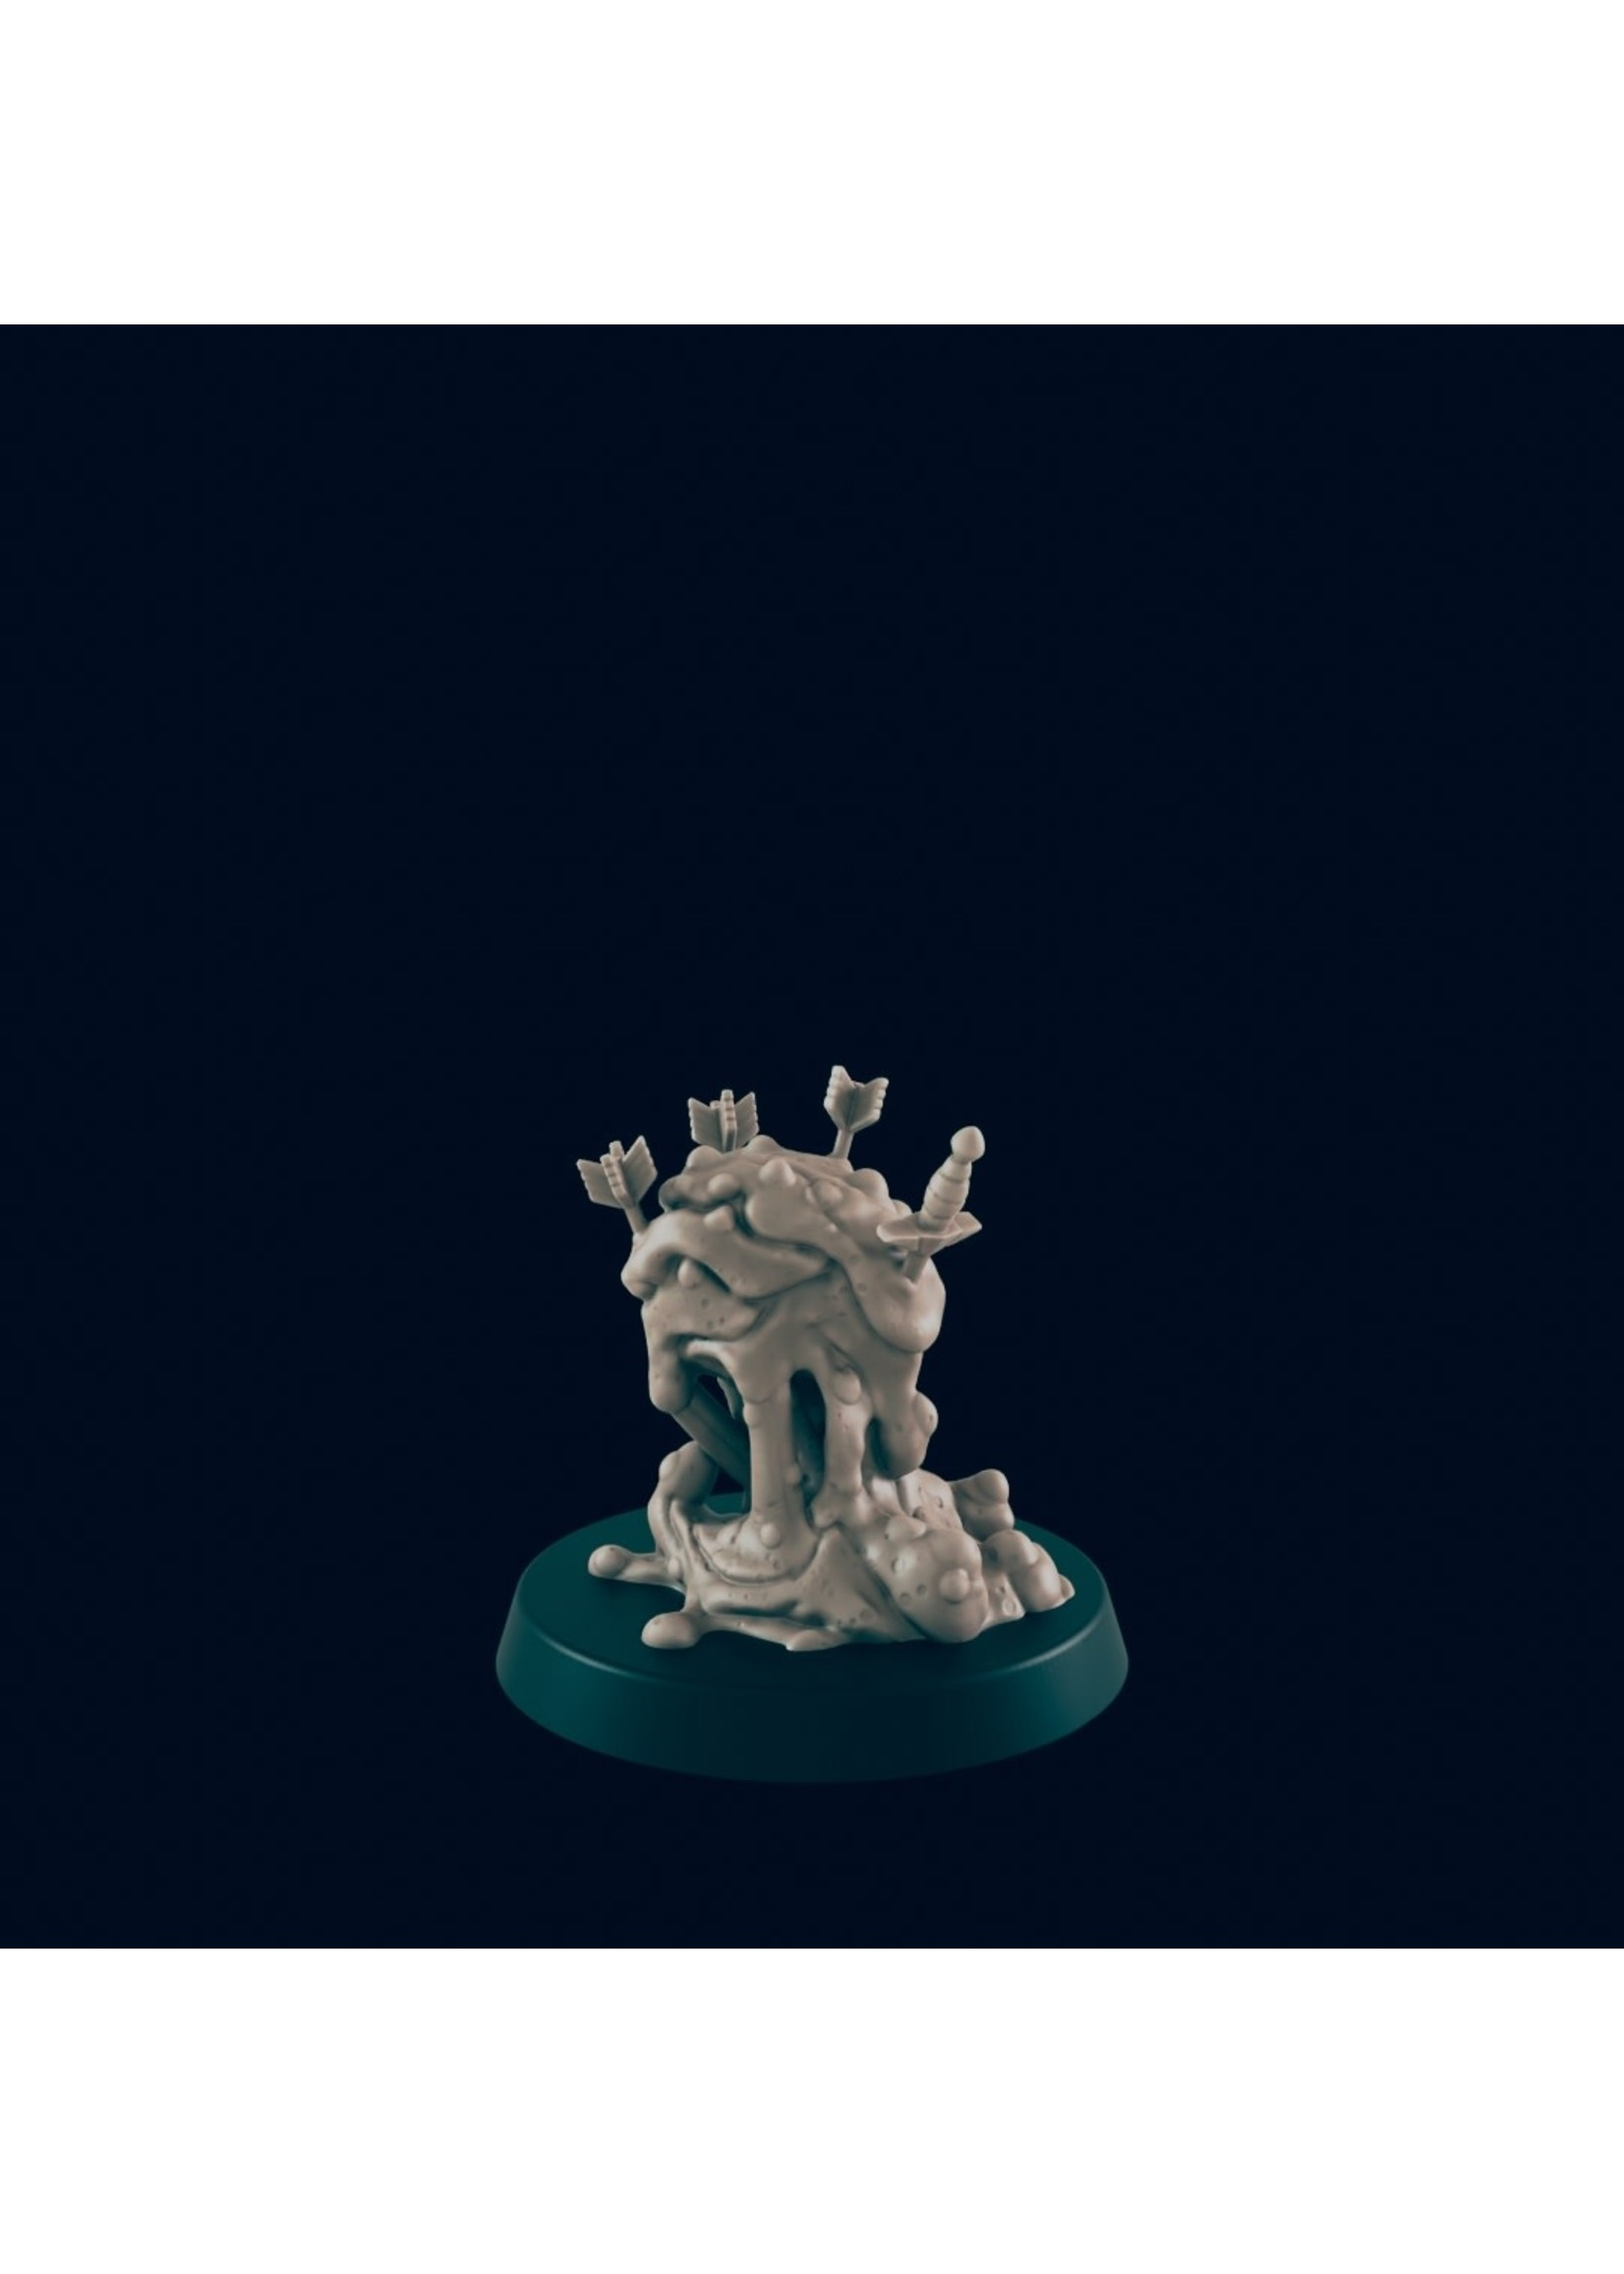 3D Printed Miniature - Ooze 2 - Dungeons & Dragons - Beasts and Baddies KS